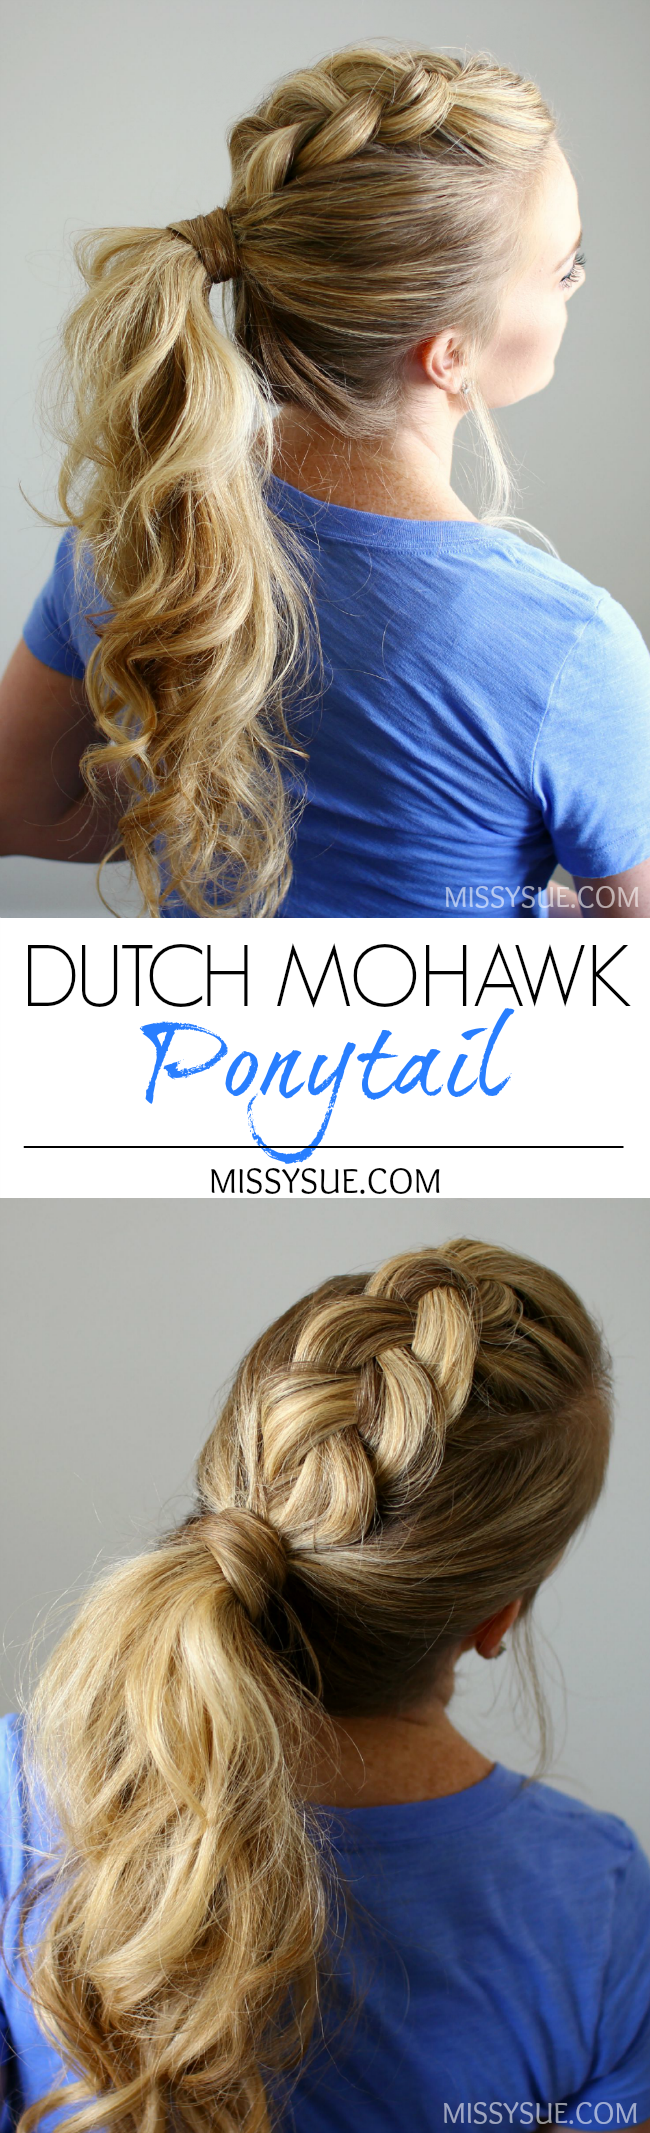 Dutch mohawk ponytail missy sue hairstyles for long hair